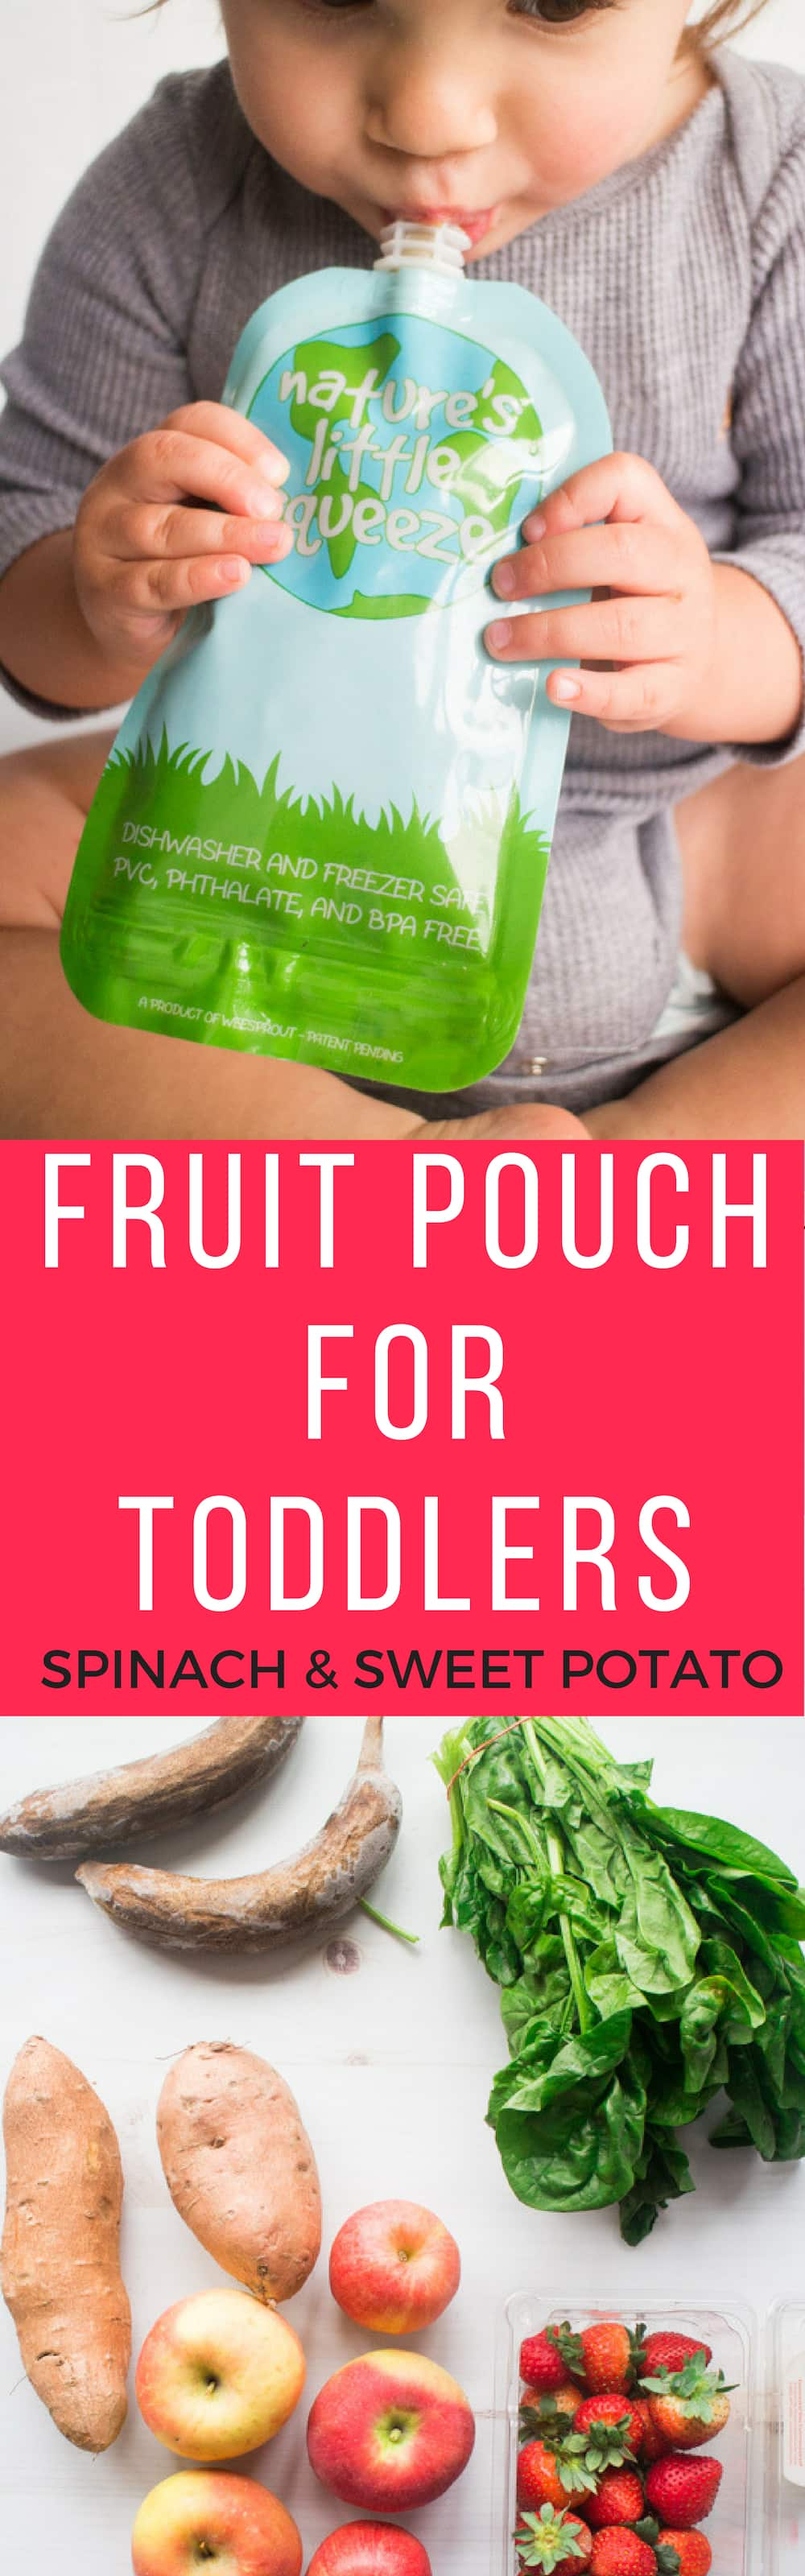 Easy to make fruit puree pouches - perfect for baby and toddler!  My daughter is anemic, so I came up with this Spinach Sweet Potato Fruit Pouch recipe to give her more Iron Rich foods! She loves these!